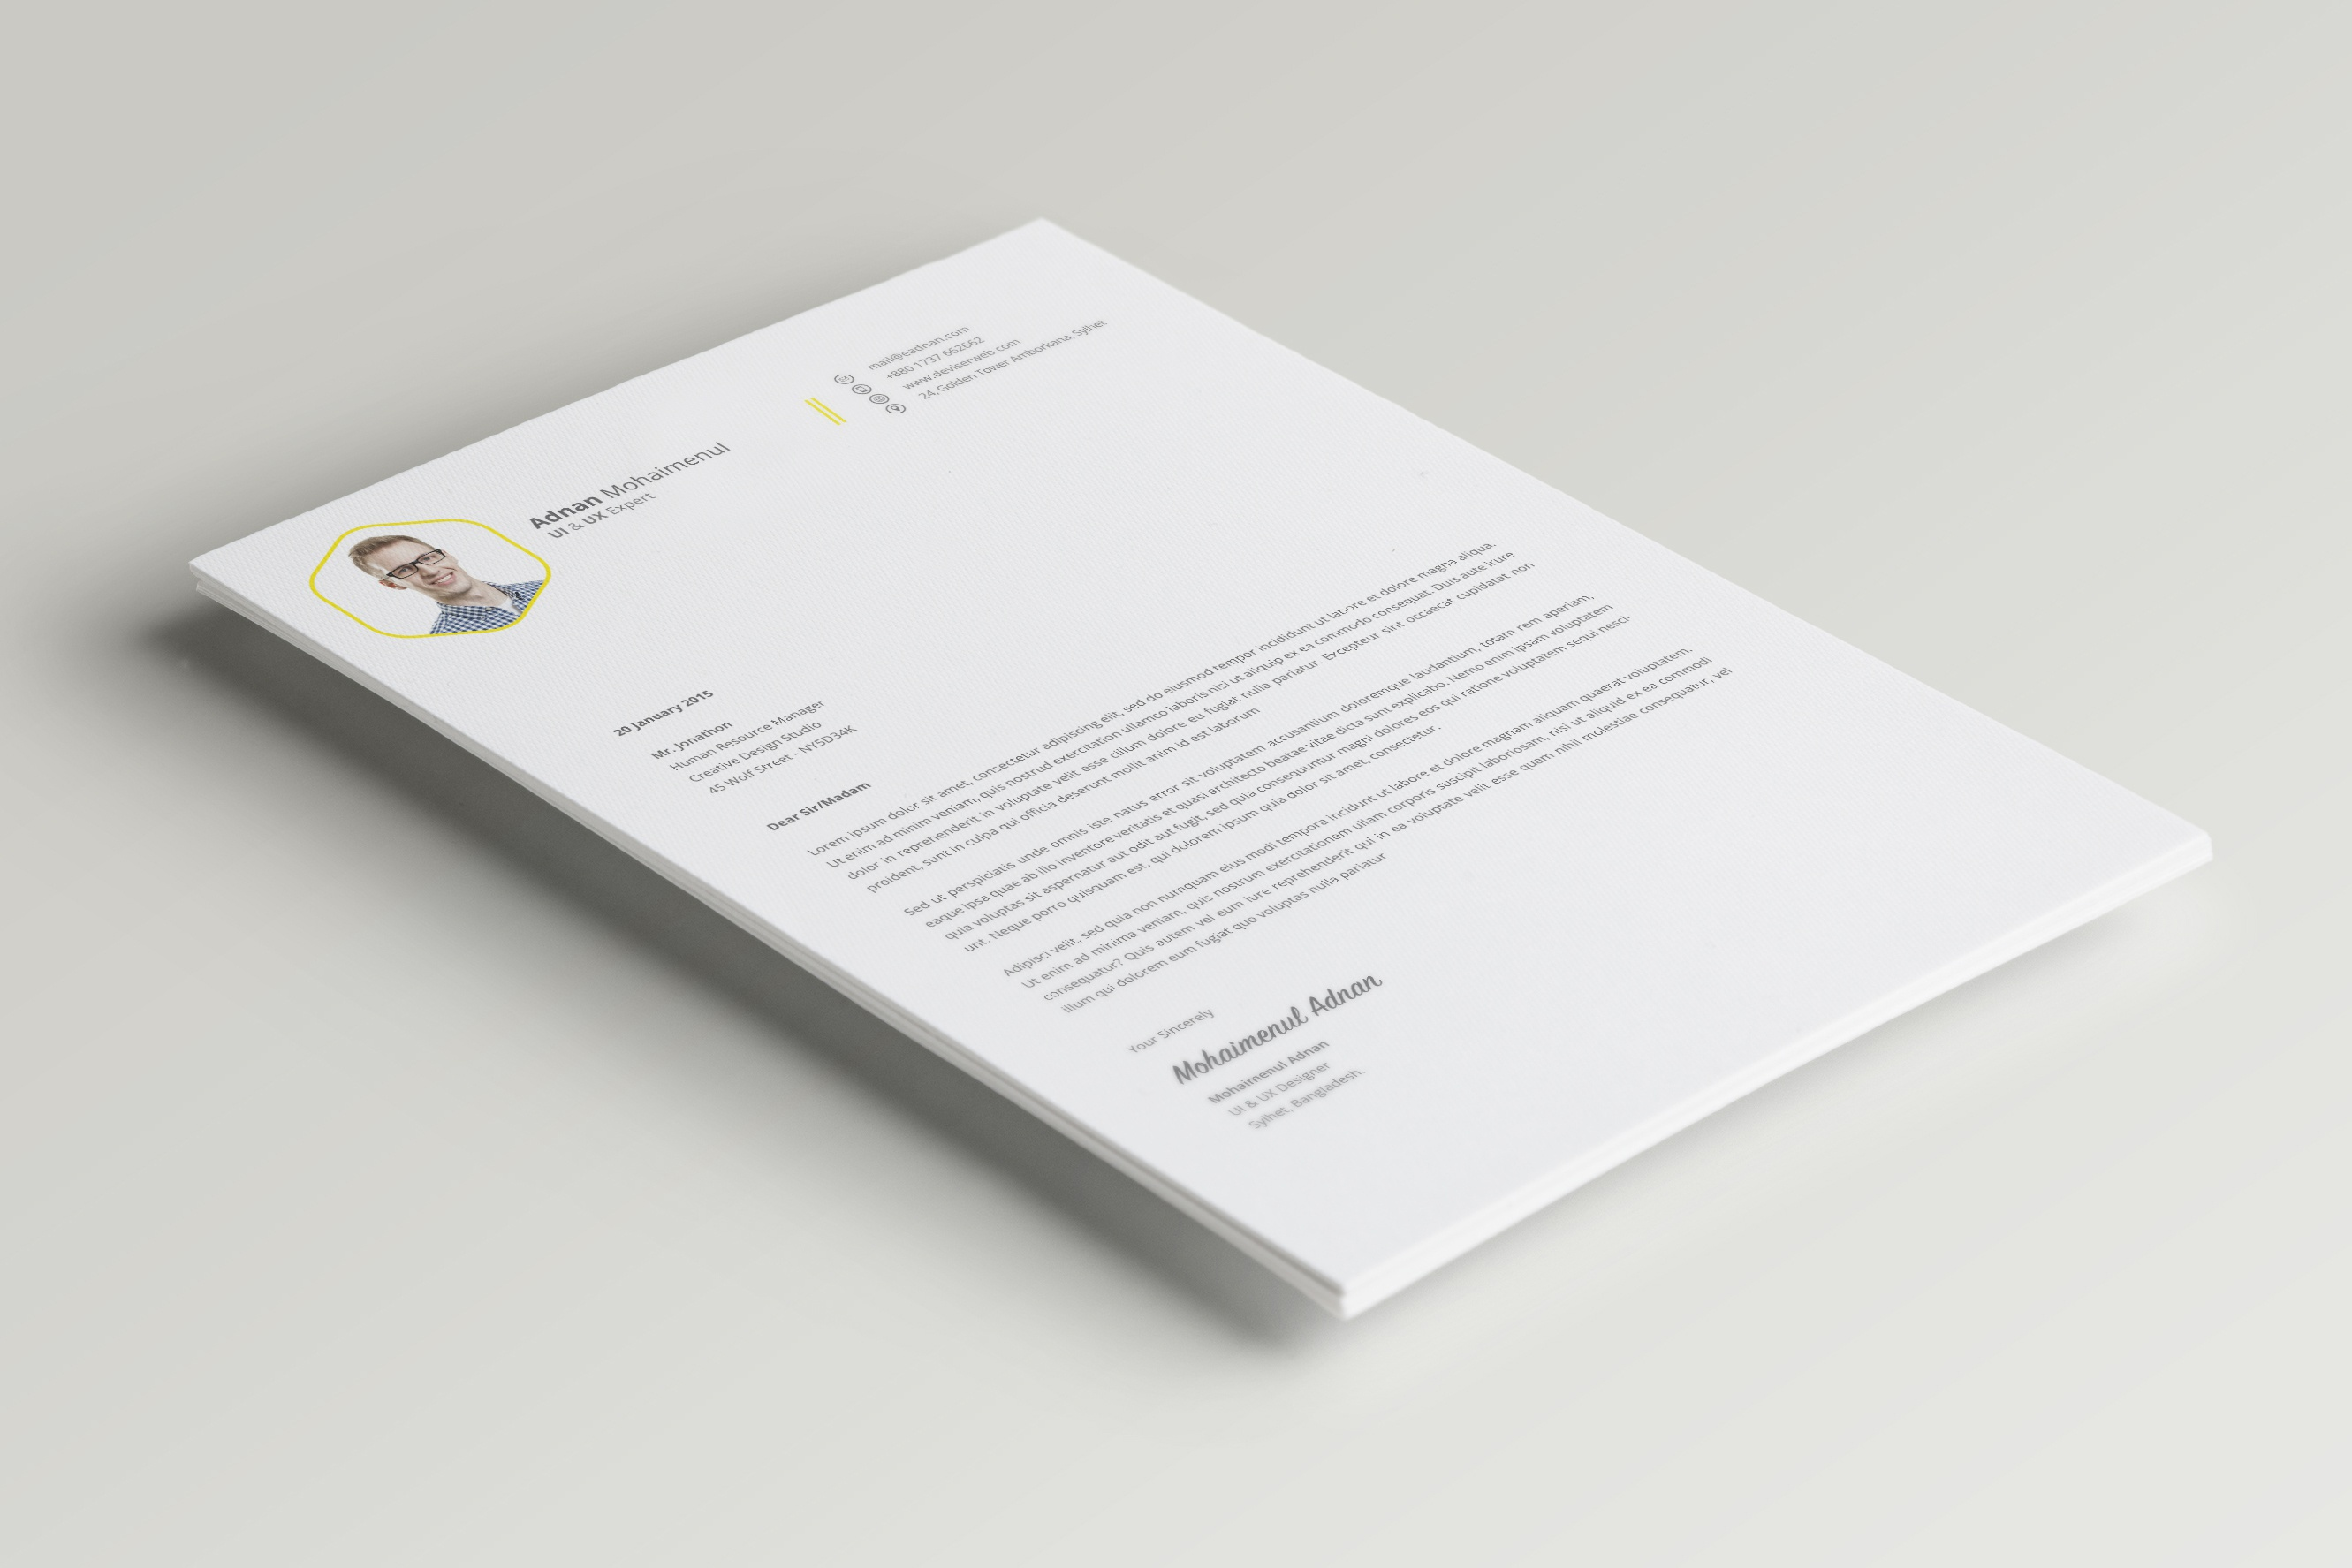 03 Cv Resume Cover Letter Psd Free Download Psdboom.com  Resume Cover Letter Builder